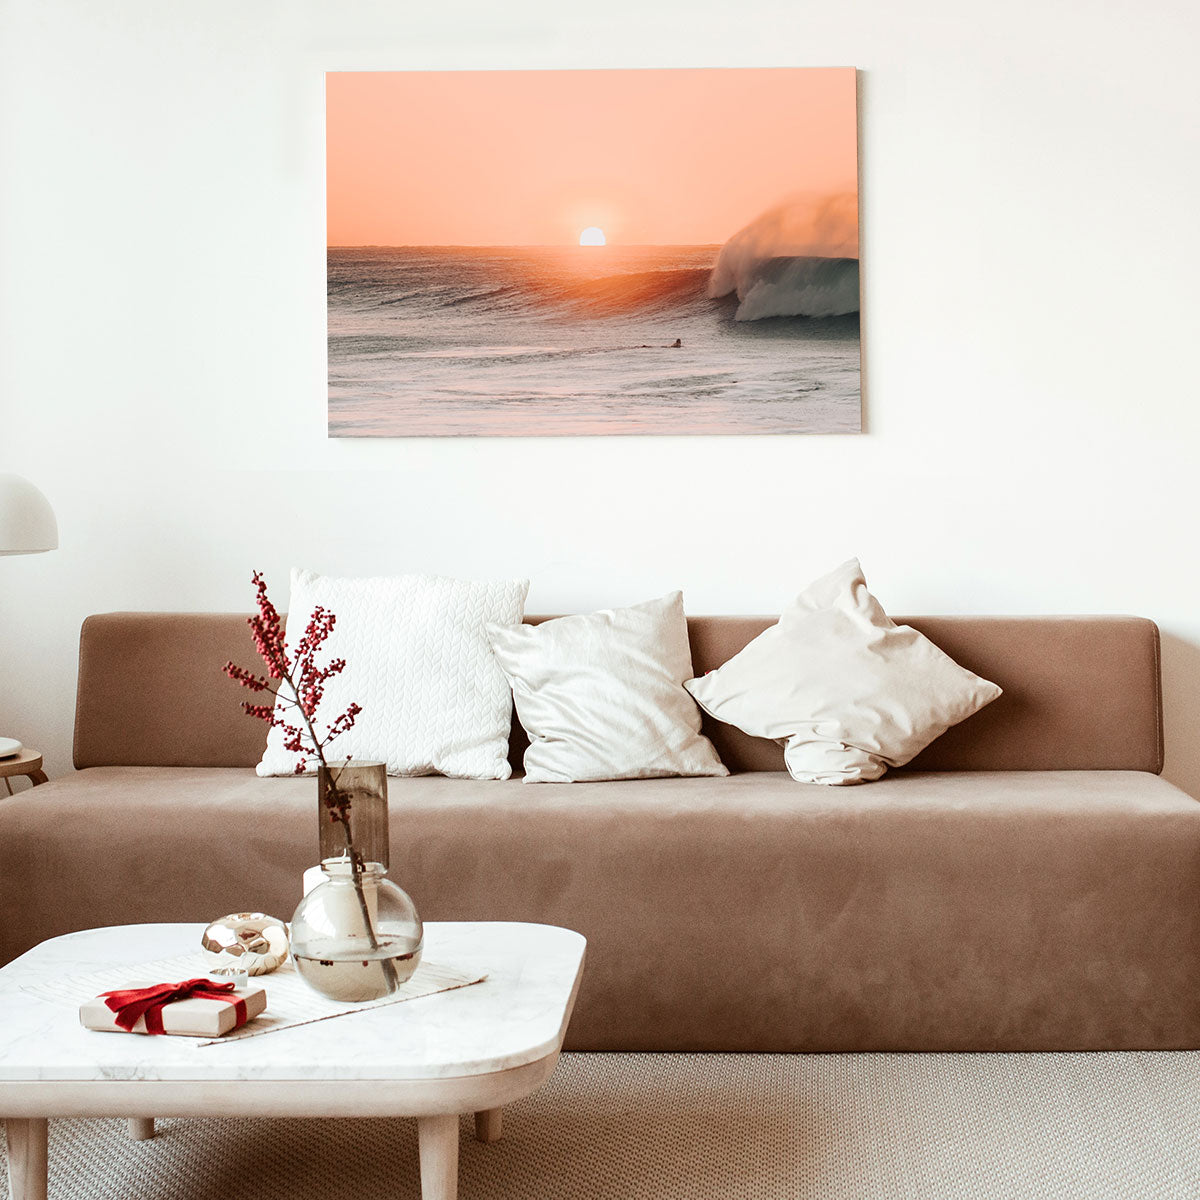 Beach Photo Printed on a Photoboard Displayed in Living Room - Posterjack Canada